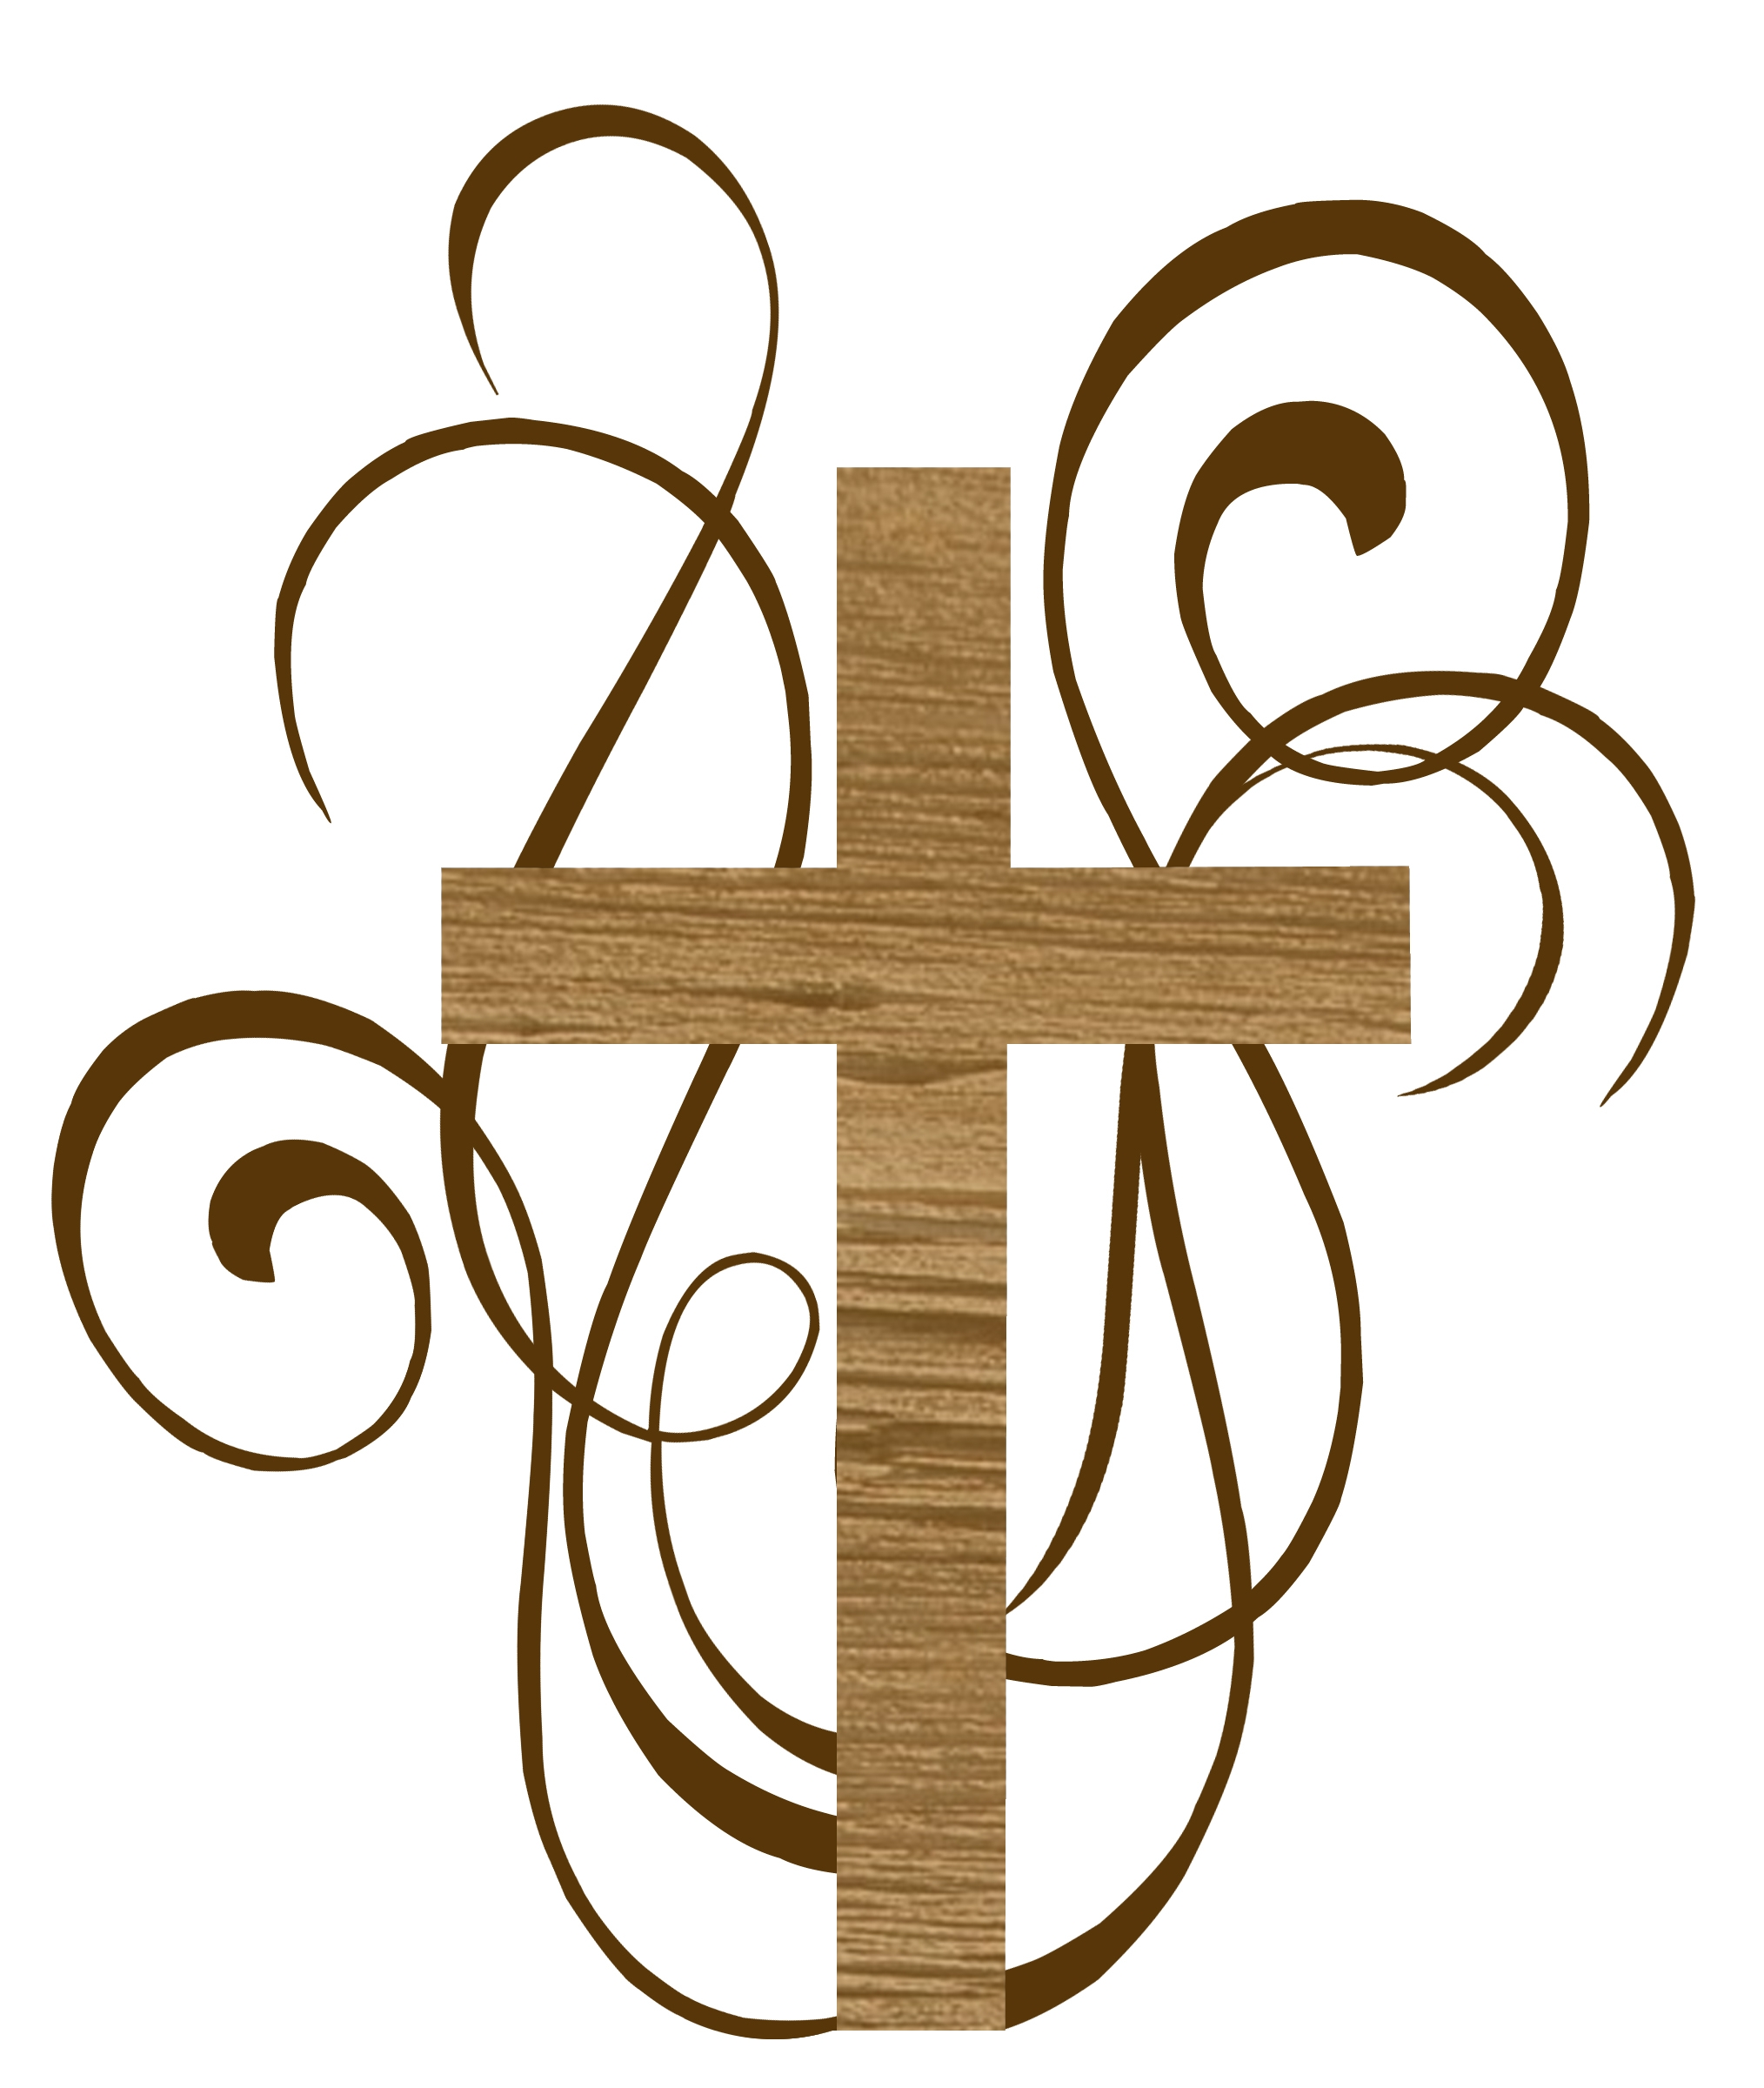 Fancys cross. Wedding cliparts free download